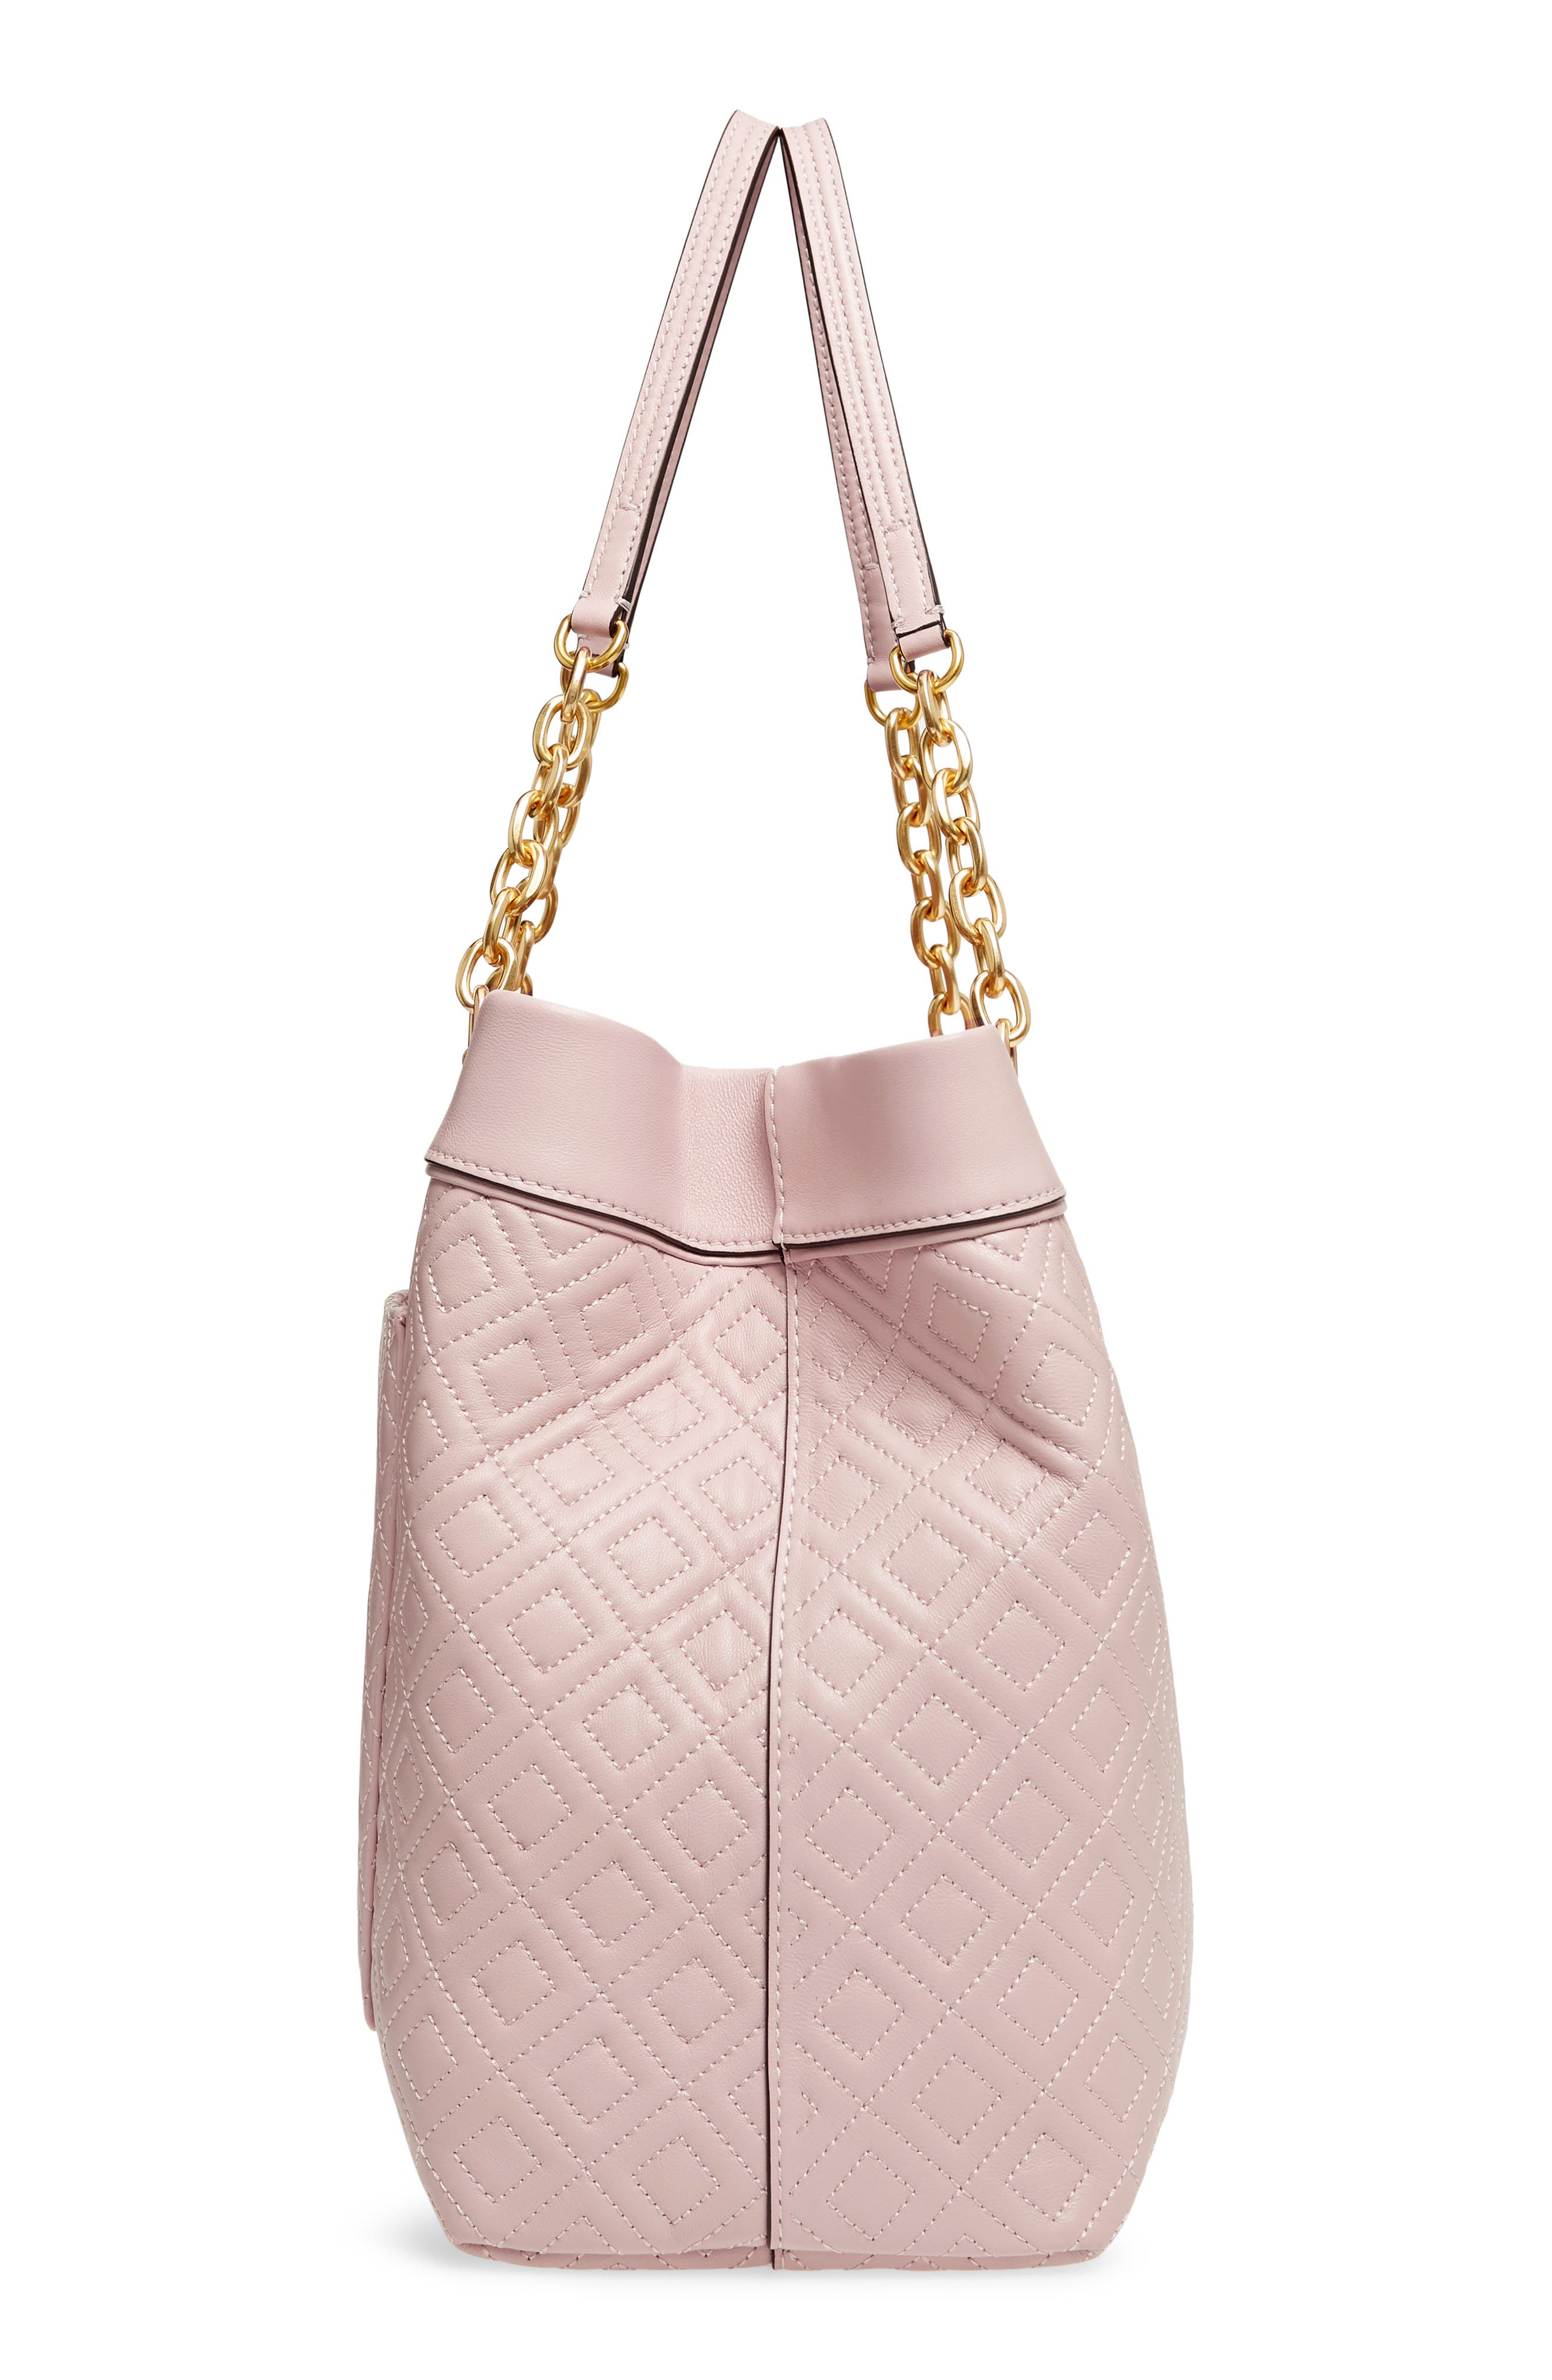 Fleming Triple Compartment Leather Tote,                             Alternate thumbnail 5, color,                             Shell Pink